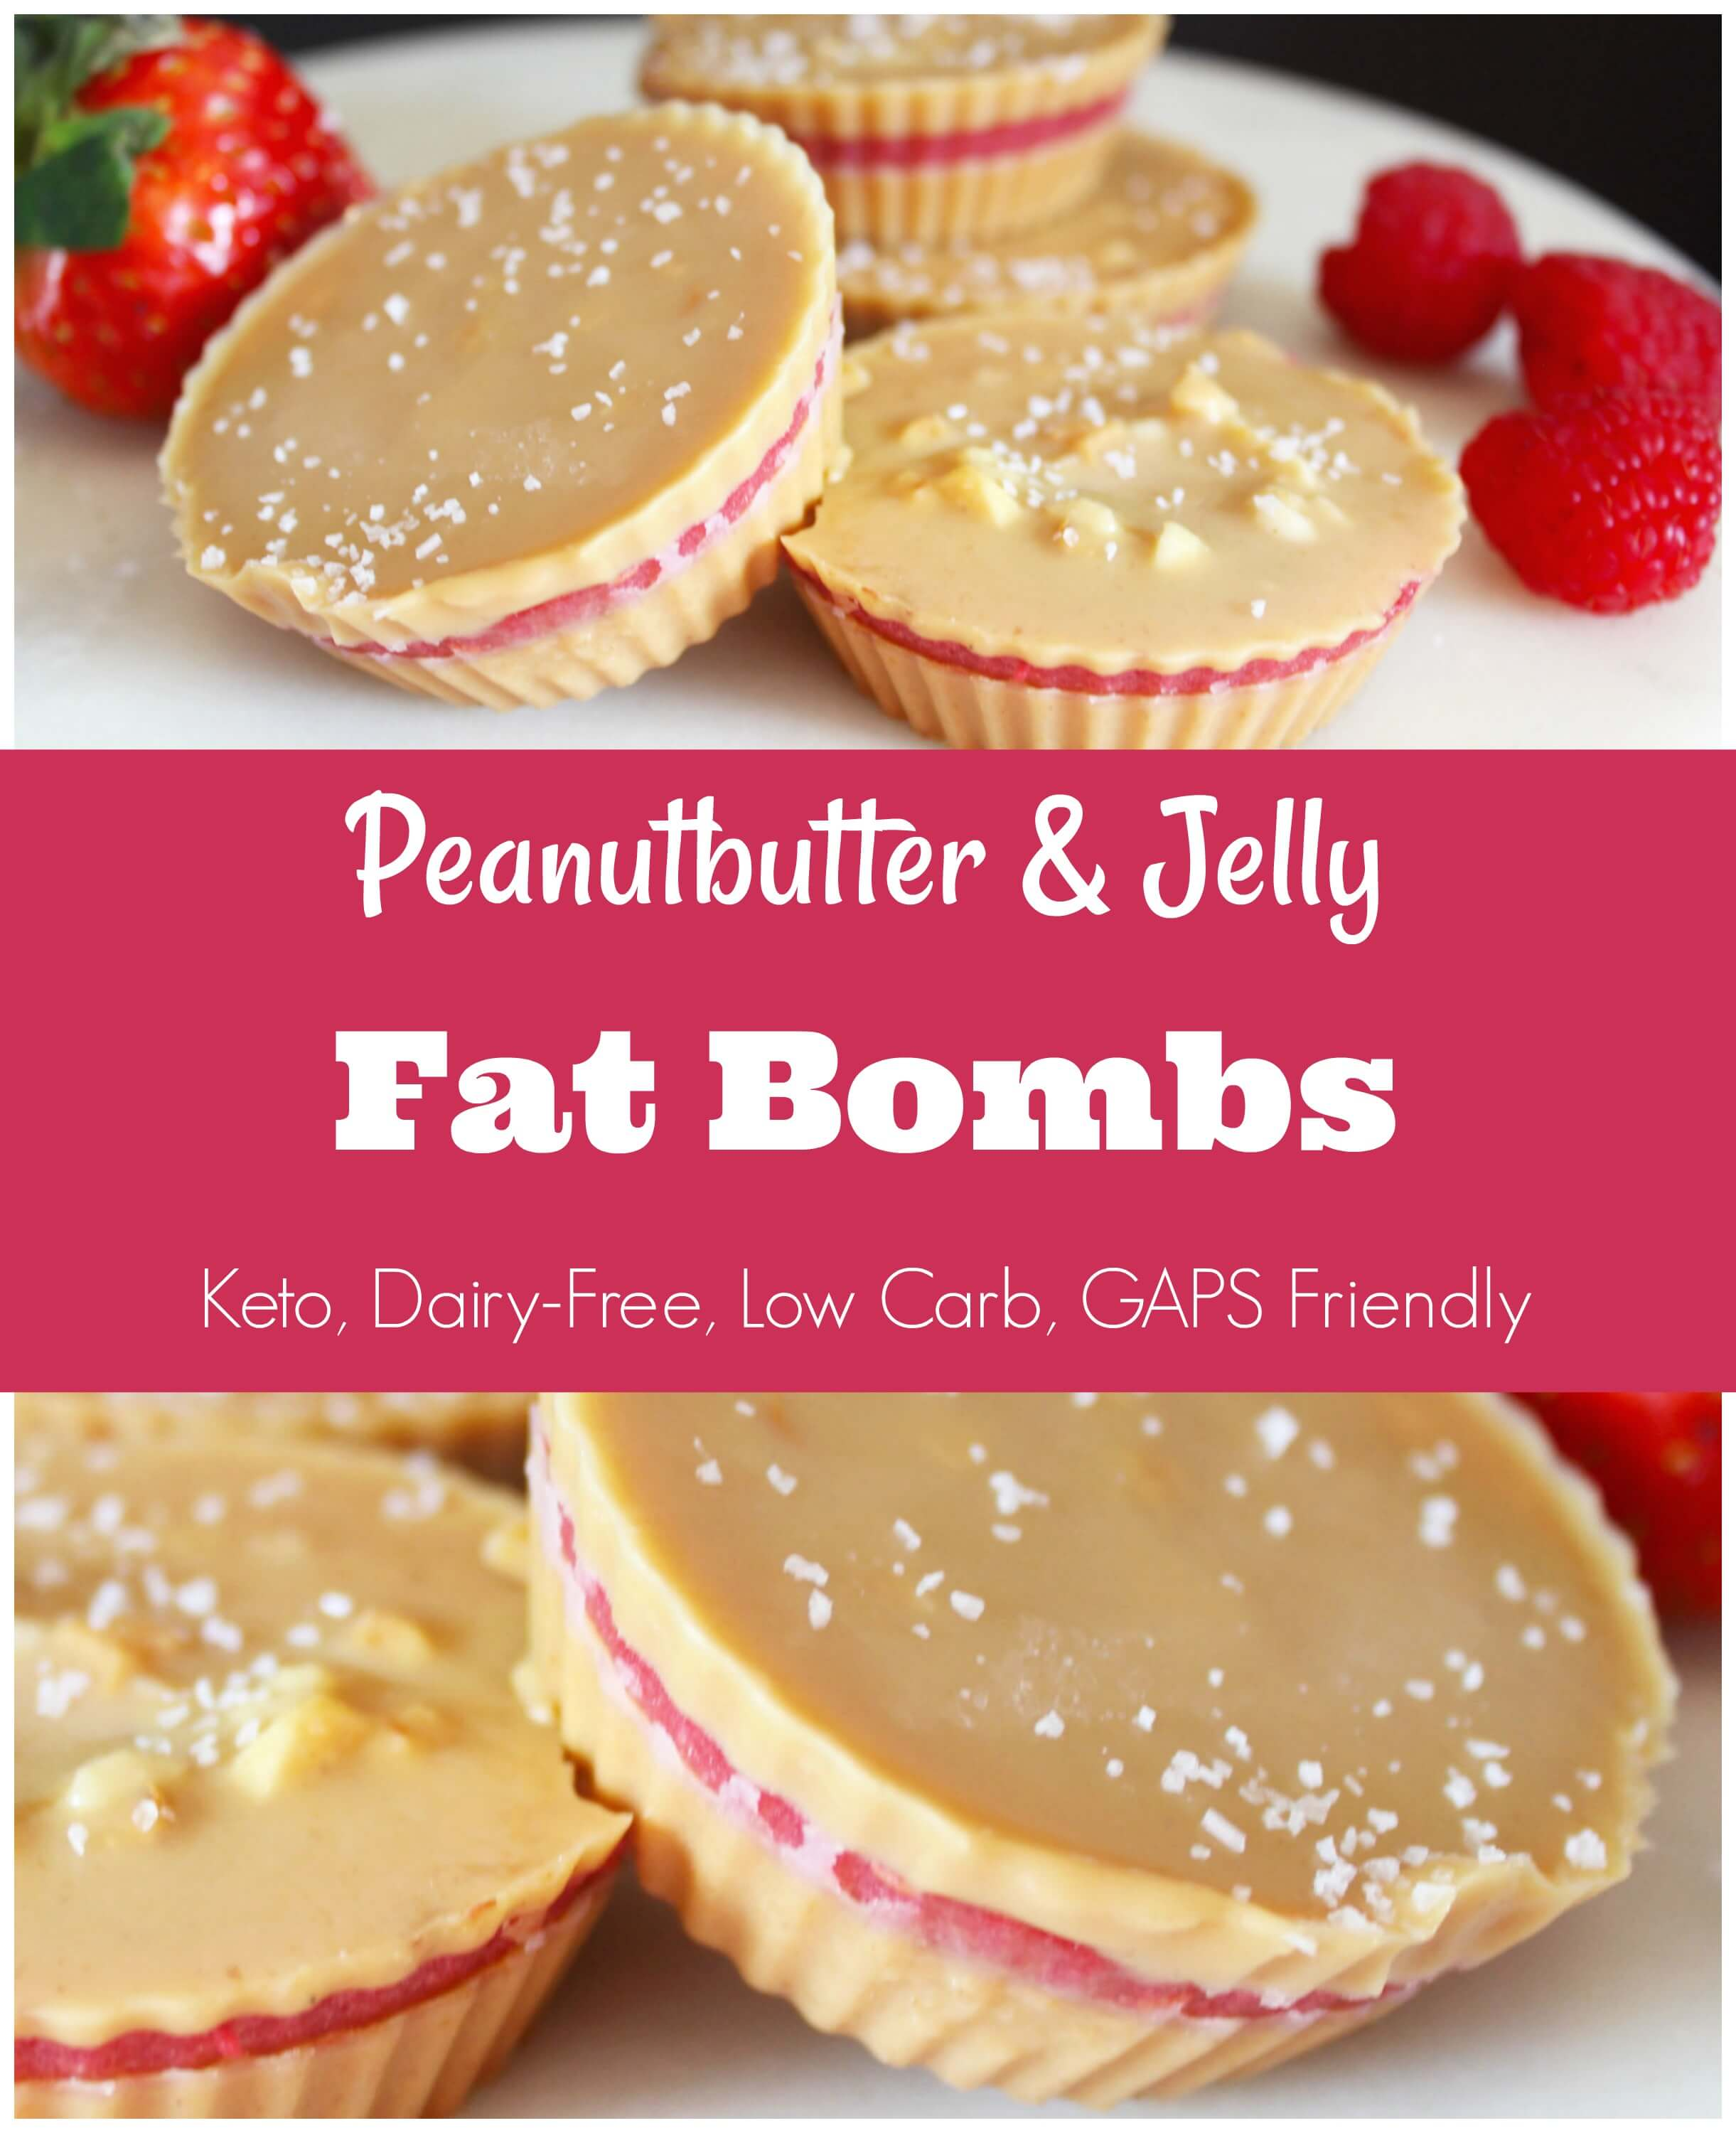 Delicious Peanut Butter and Jelly Fat Bombs (Keto) - Health